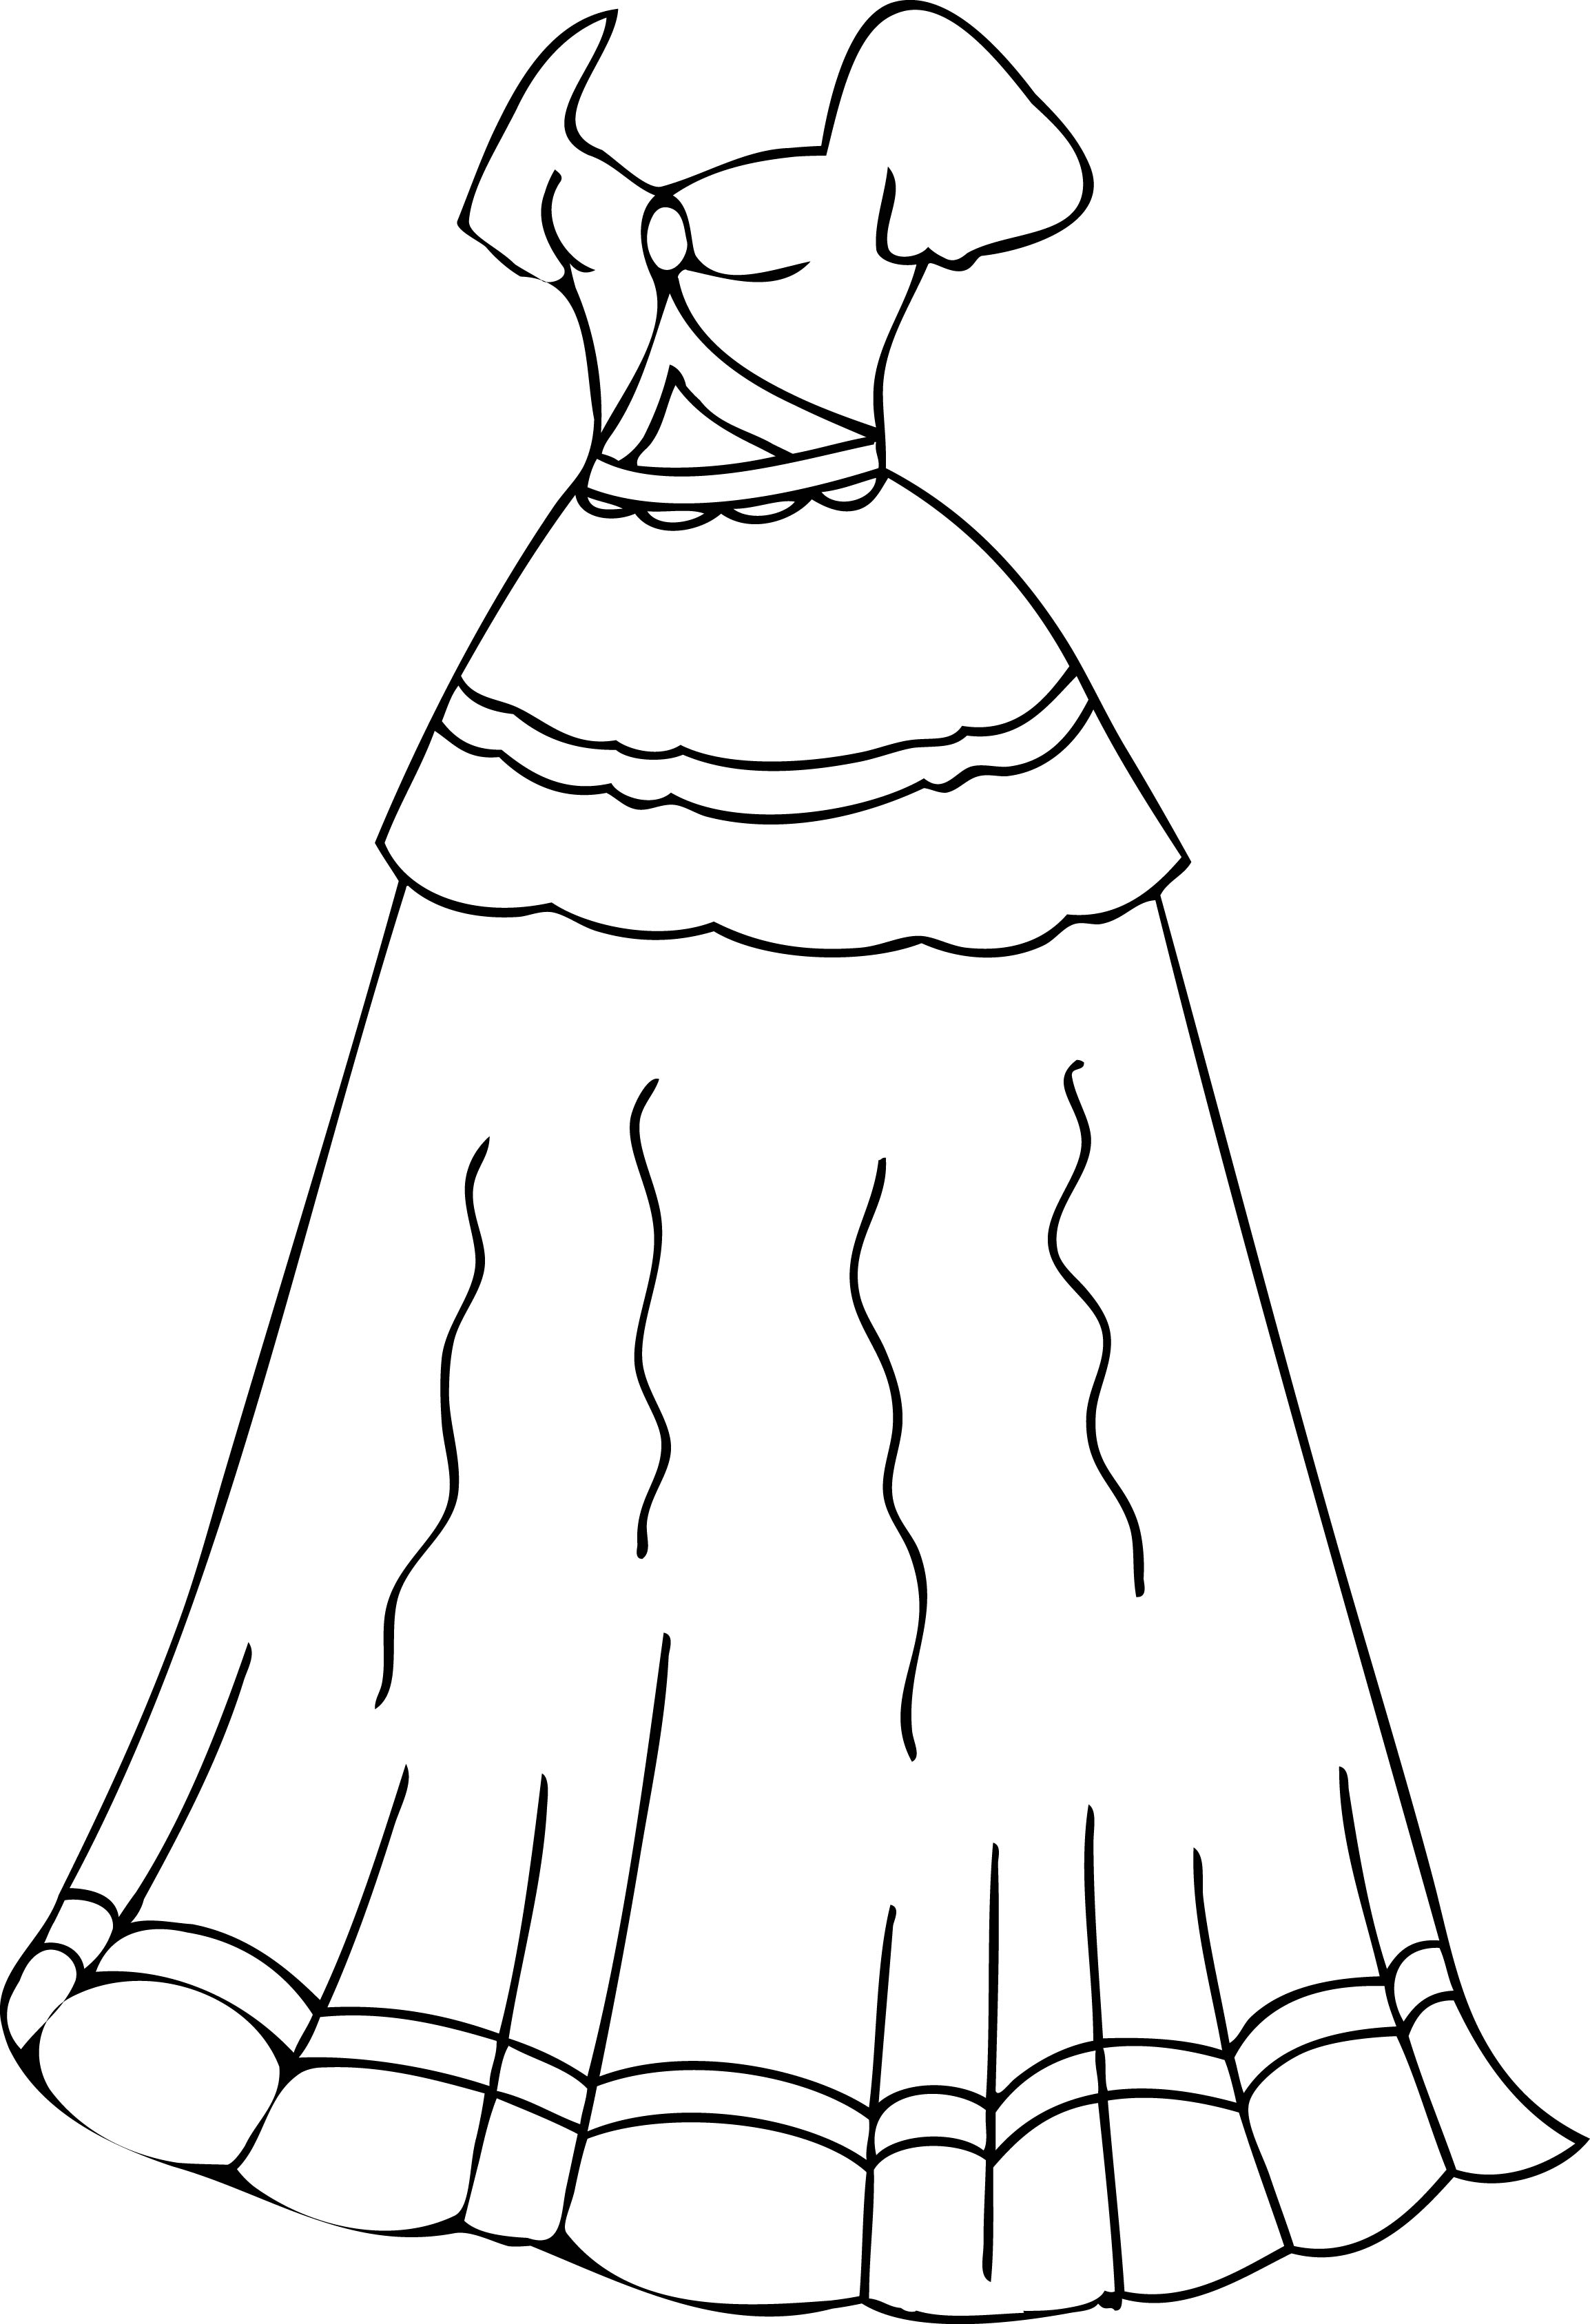 Dress Coloring Pages Printable Wecoloringpage